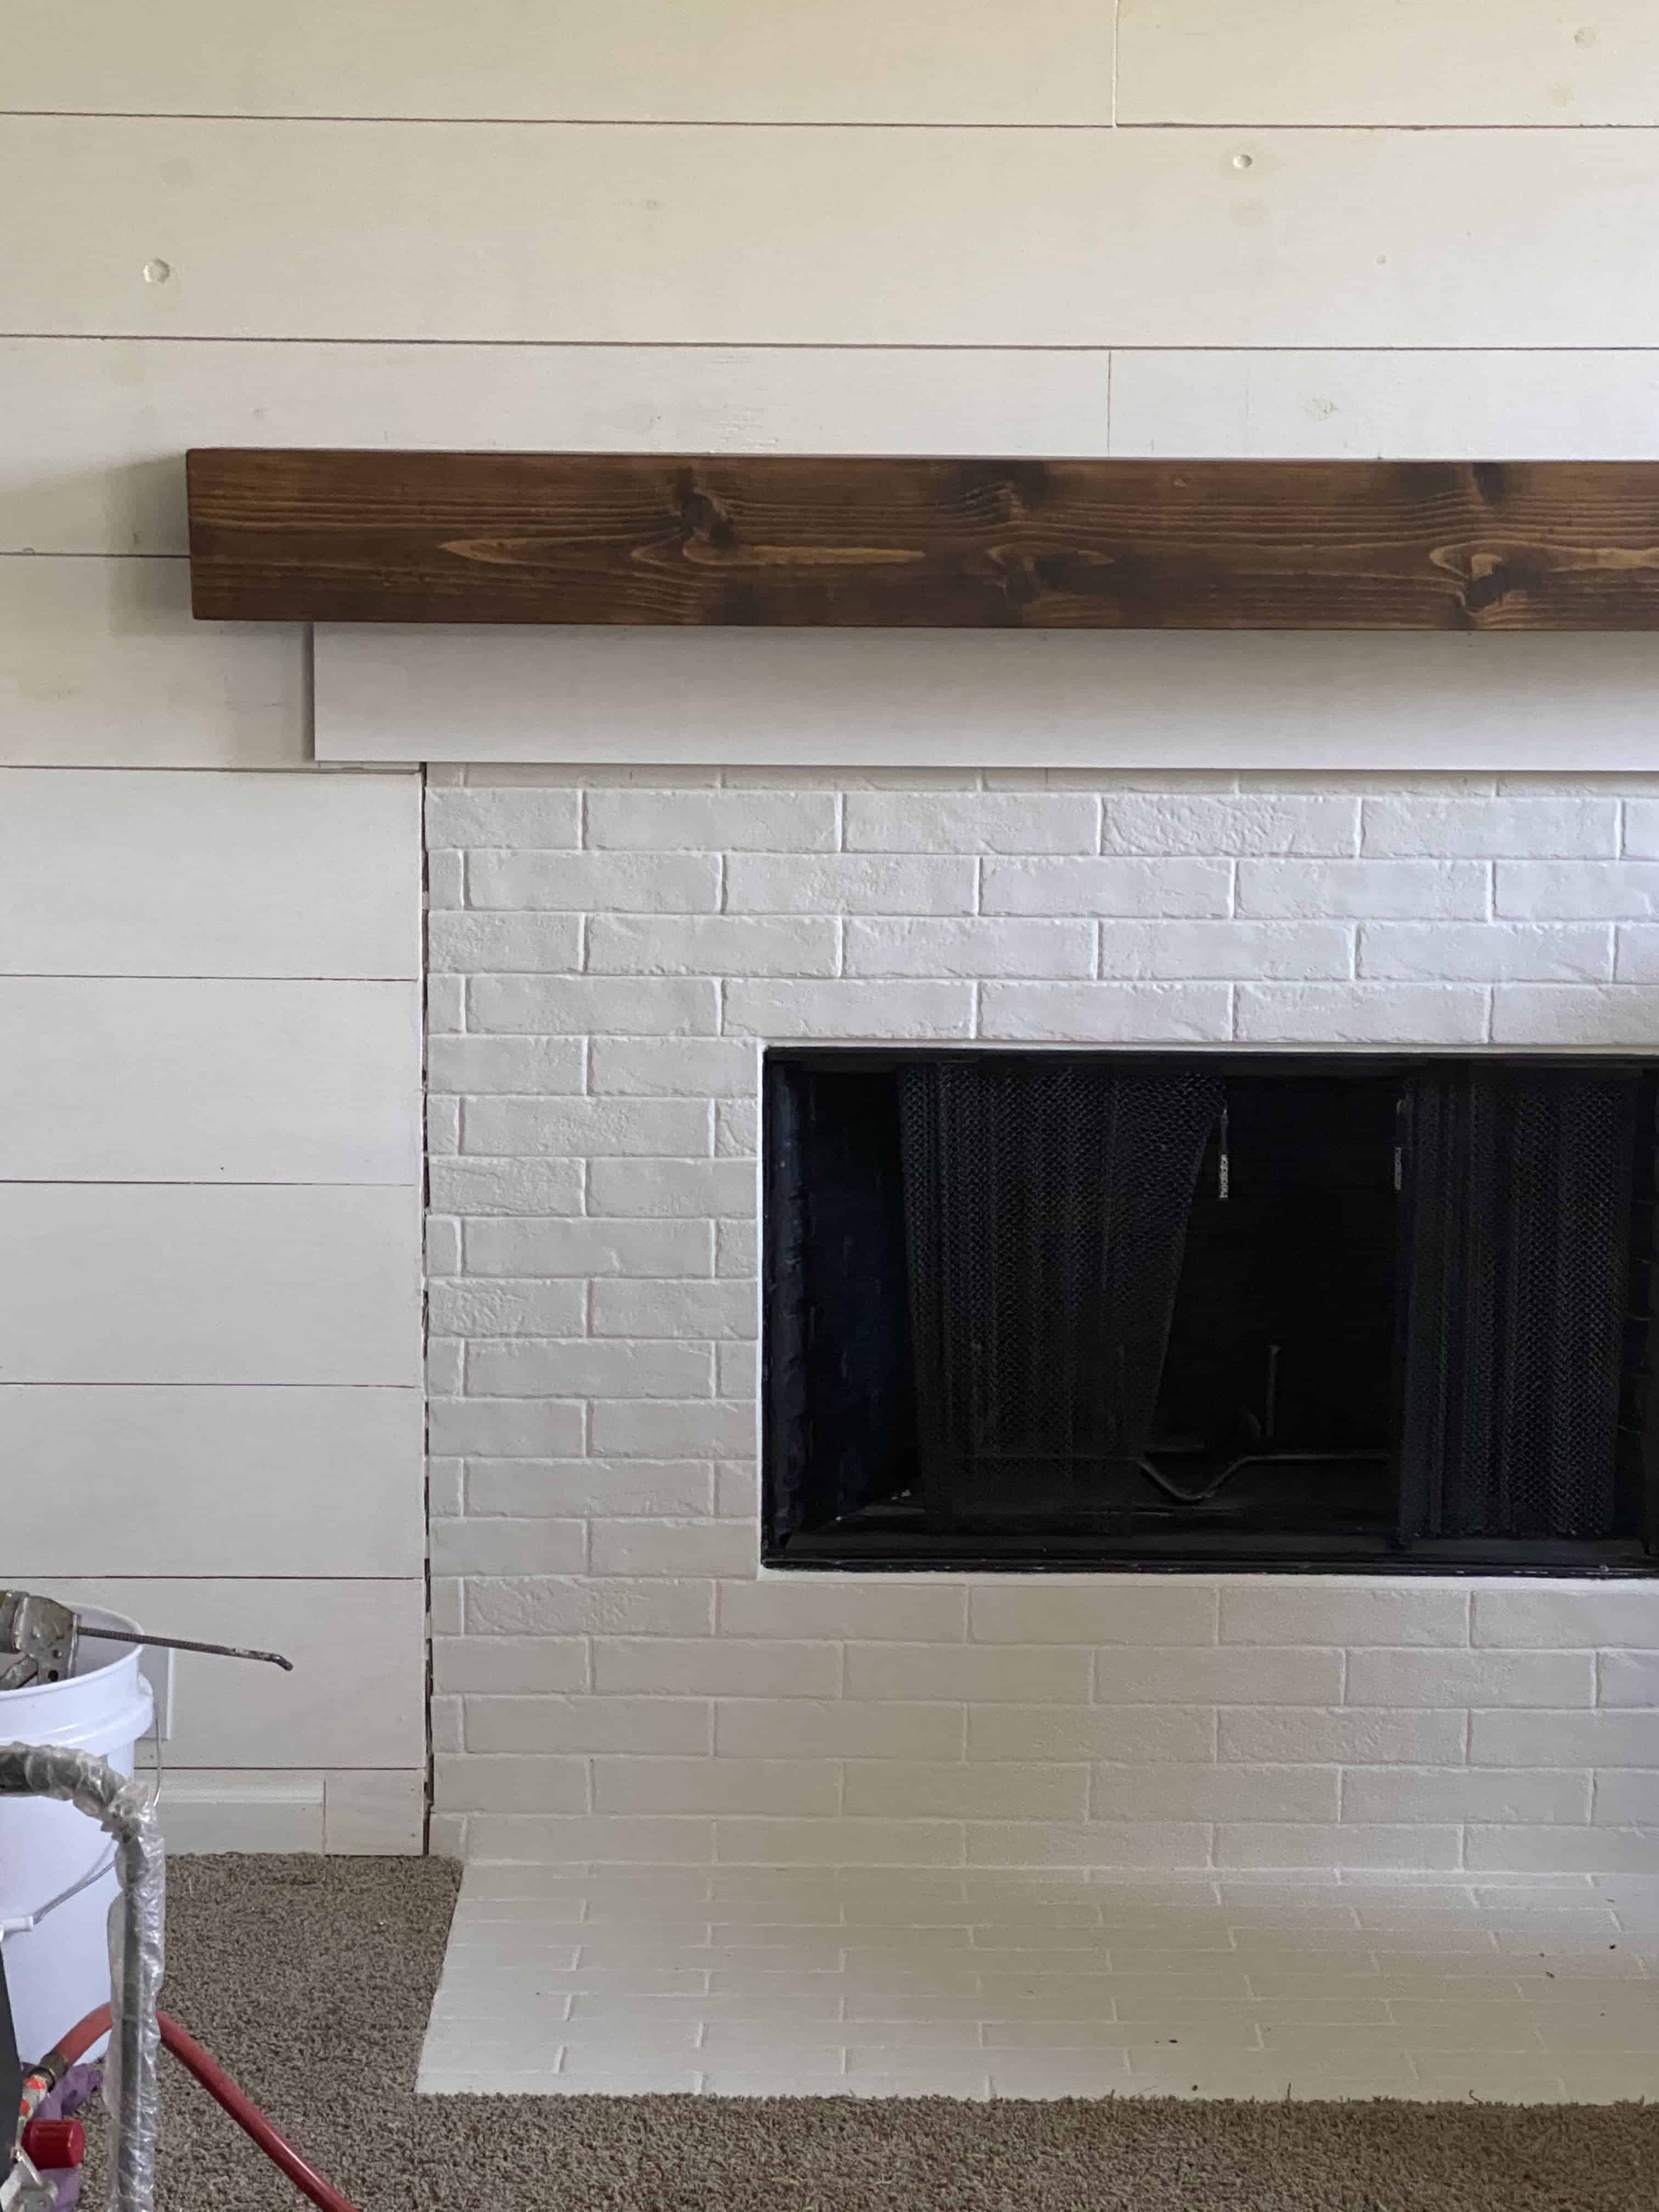 Fireplace Remodel Top piece of trim